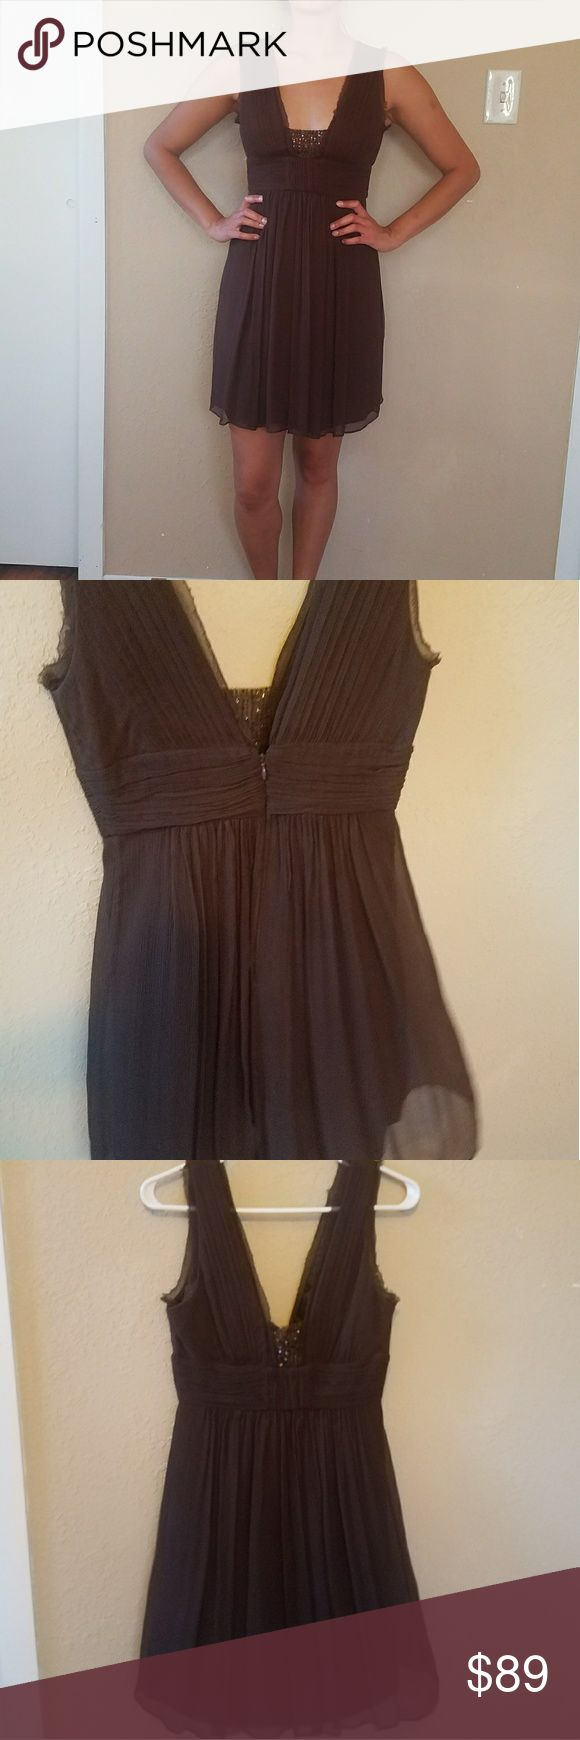 BCBG MaxAzria Chocolate Brown cocktail dress BCBG MaxAzria Chocolate Brown cocktail dress- worn once, new condition. The silk dress has beautful beading and hem details all along the top.  There is pretty draping, folds, poly lining,  low back.  I would keep this dress,  but it is too tight.  No stretch,  fitted, back zipper closure. BCBGMaxAzria Dresses Midi